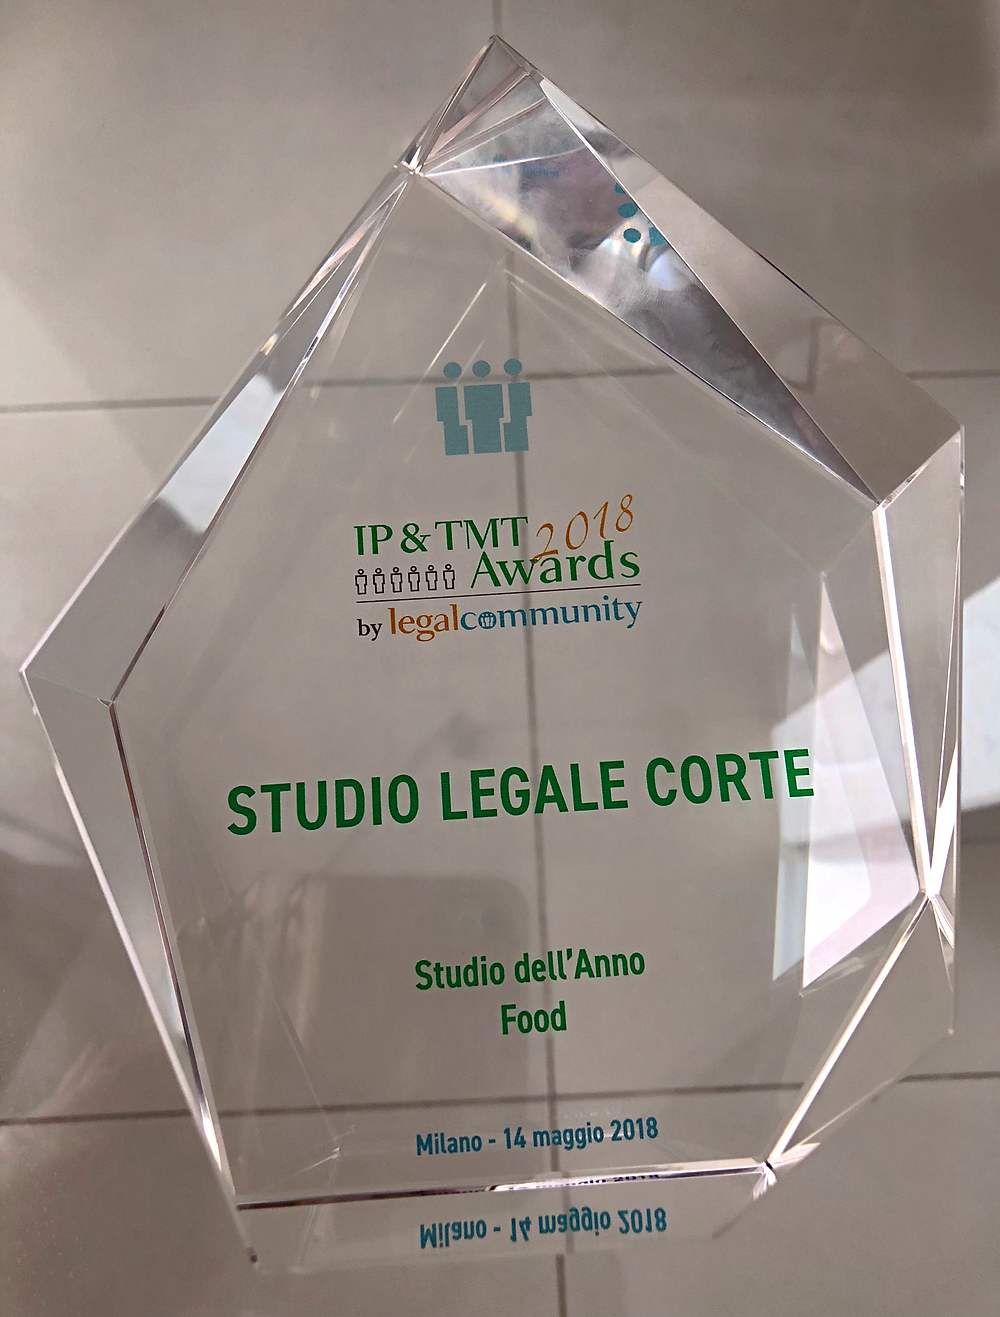 studio dell'anno food, award, Studio Legale Corte, Legalcommunity awards 2018